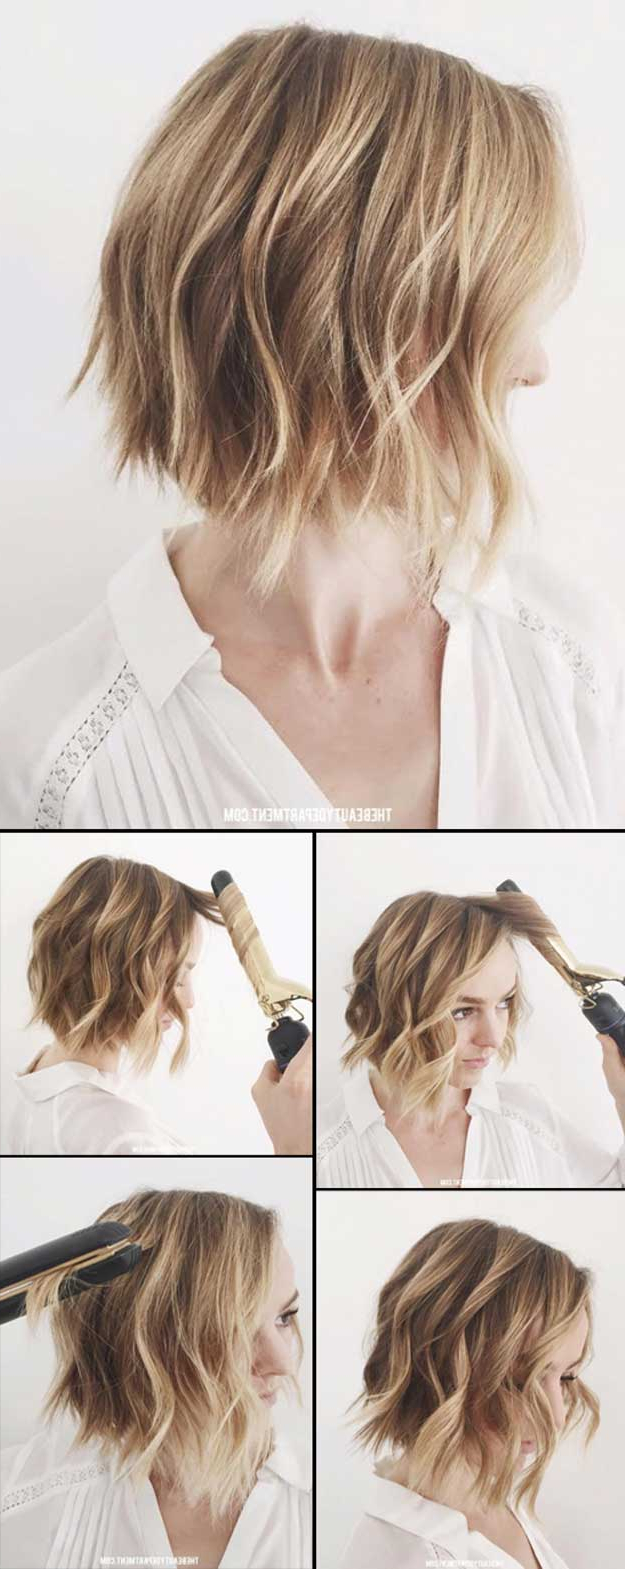 33 Best Hairstyles For Teens – The Goddess With Regard To Short Hair Cuts For Teenage Girls (View 3 of 25)